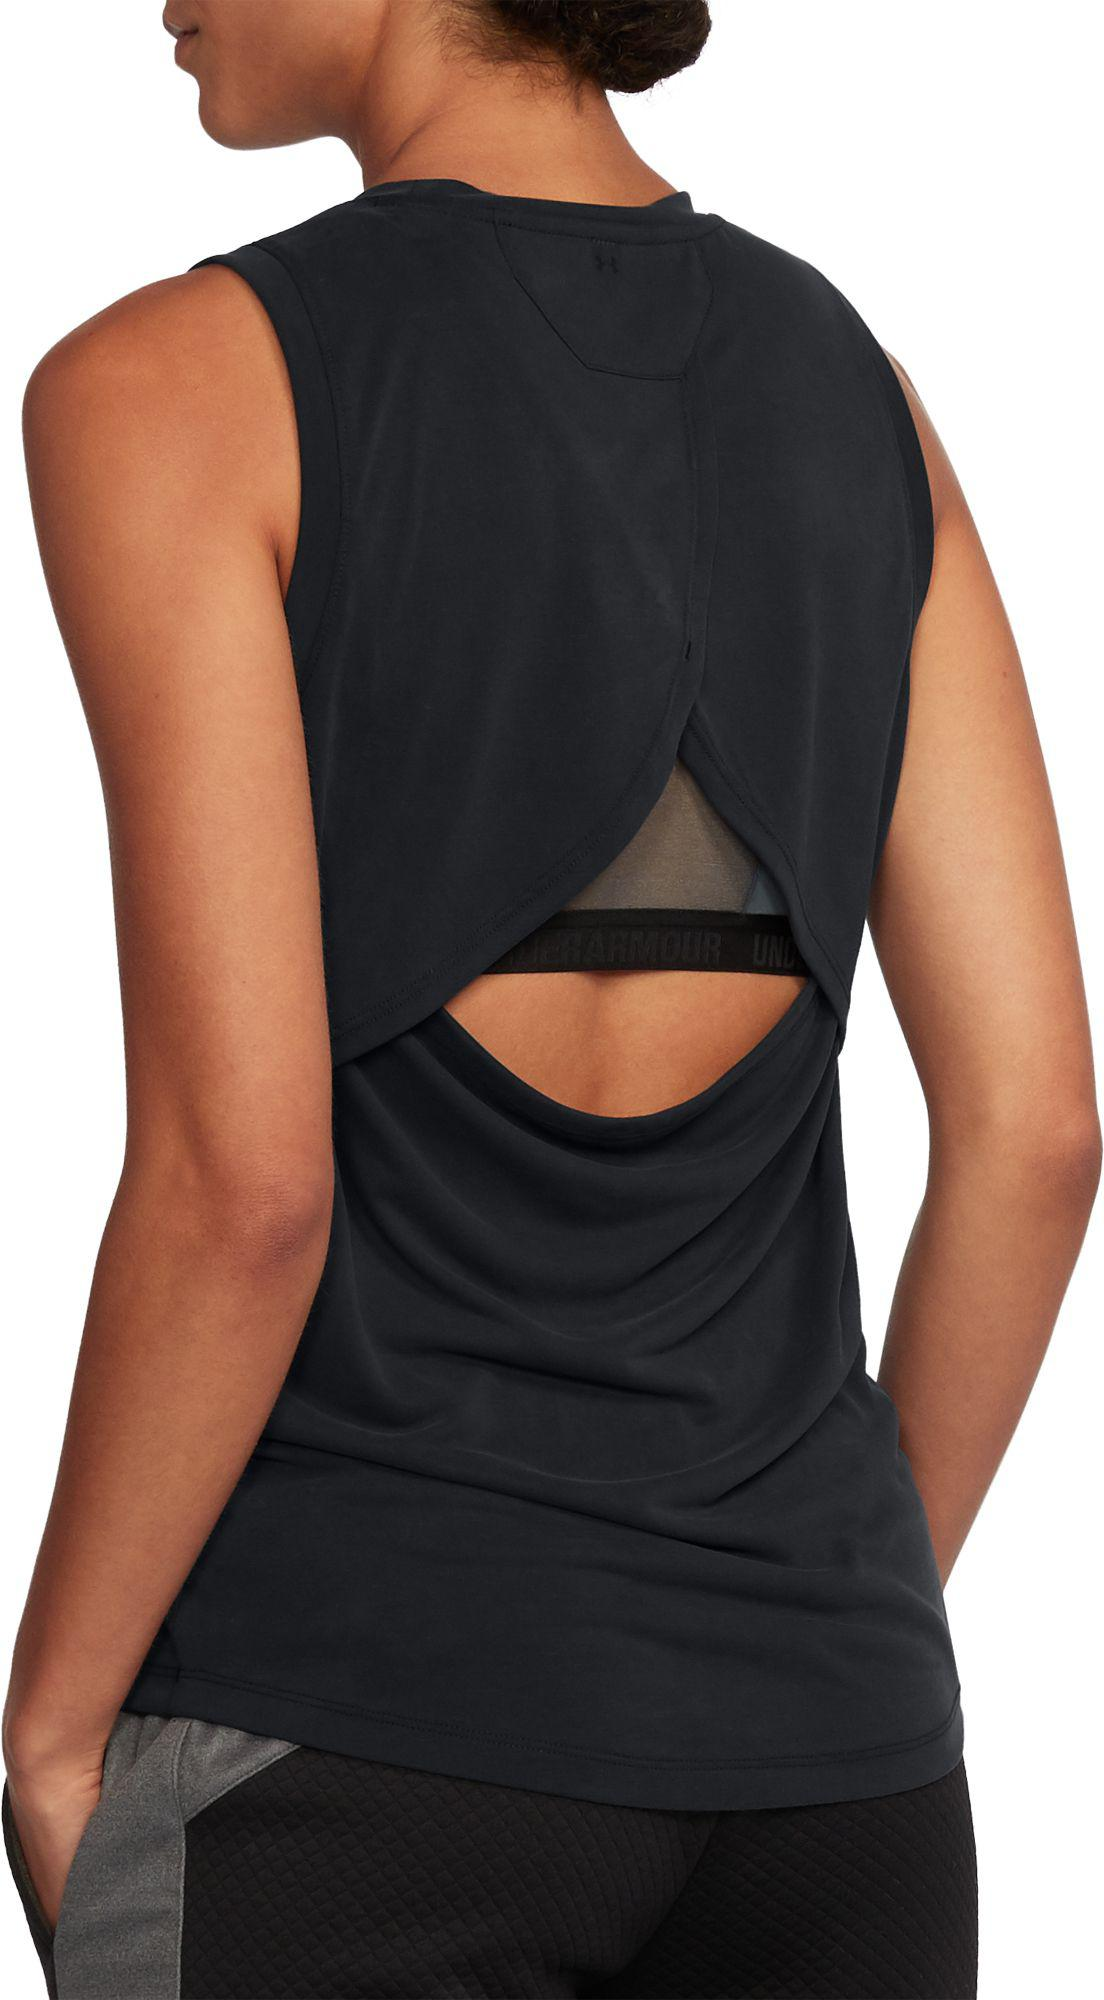 a5478b49 Under Armour Unstoppable Graphic Muscle Tank Top in Black - Lyst